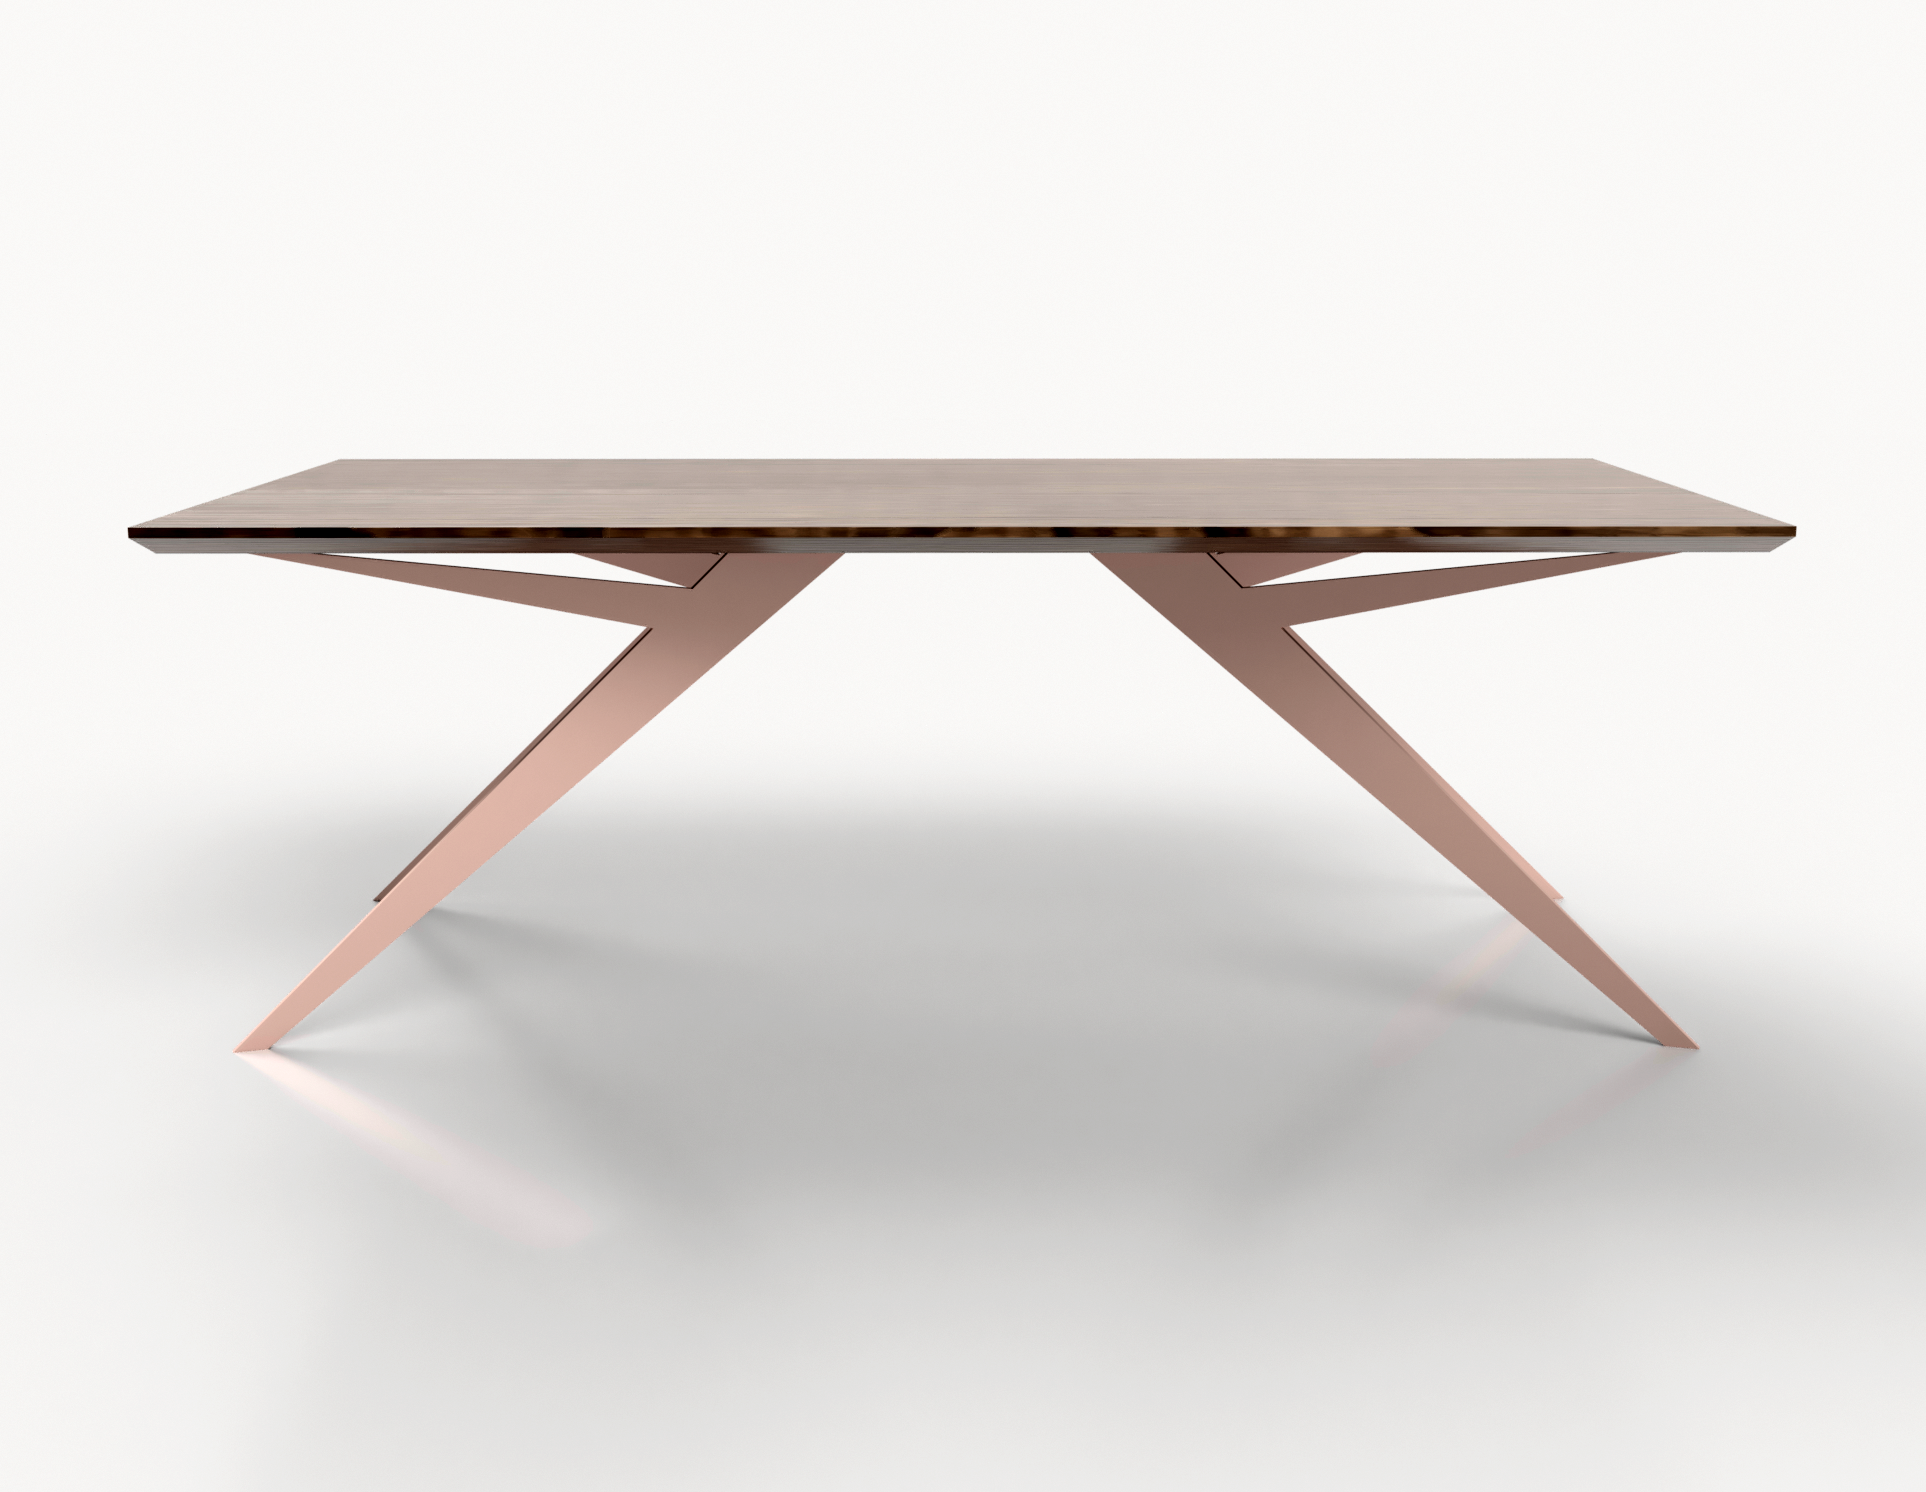 Vanni_Coffee_table_2017-Oct-28_10-36-31PM-000_CustomizedView5764855313_tiff.png